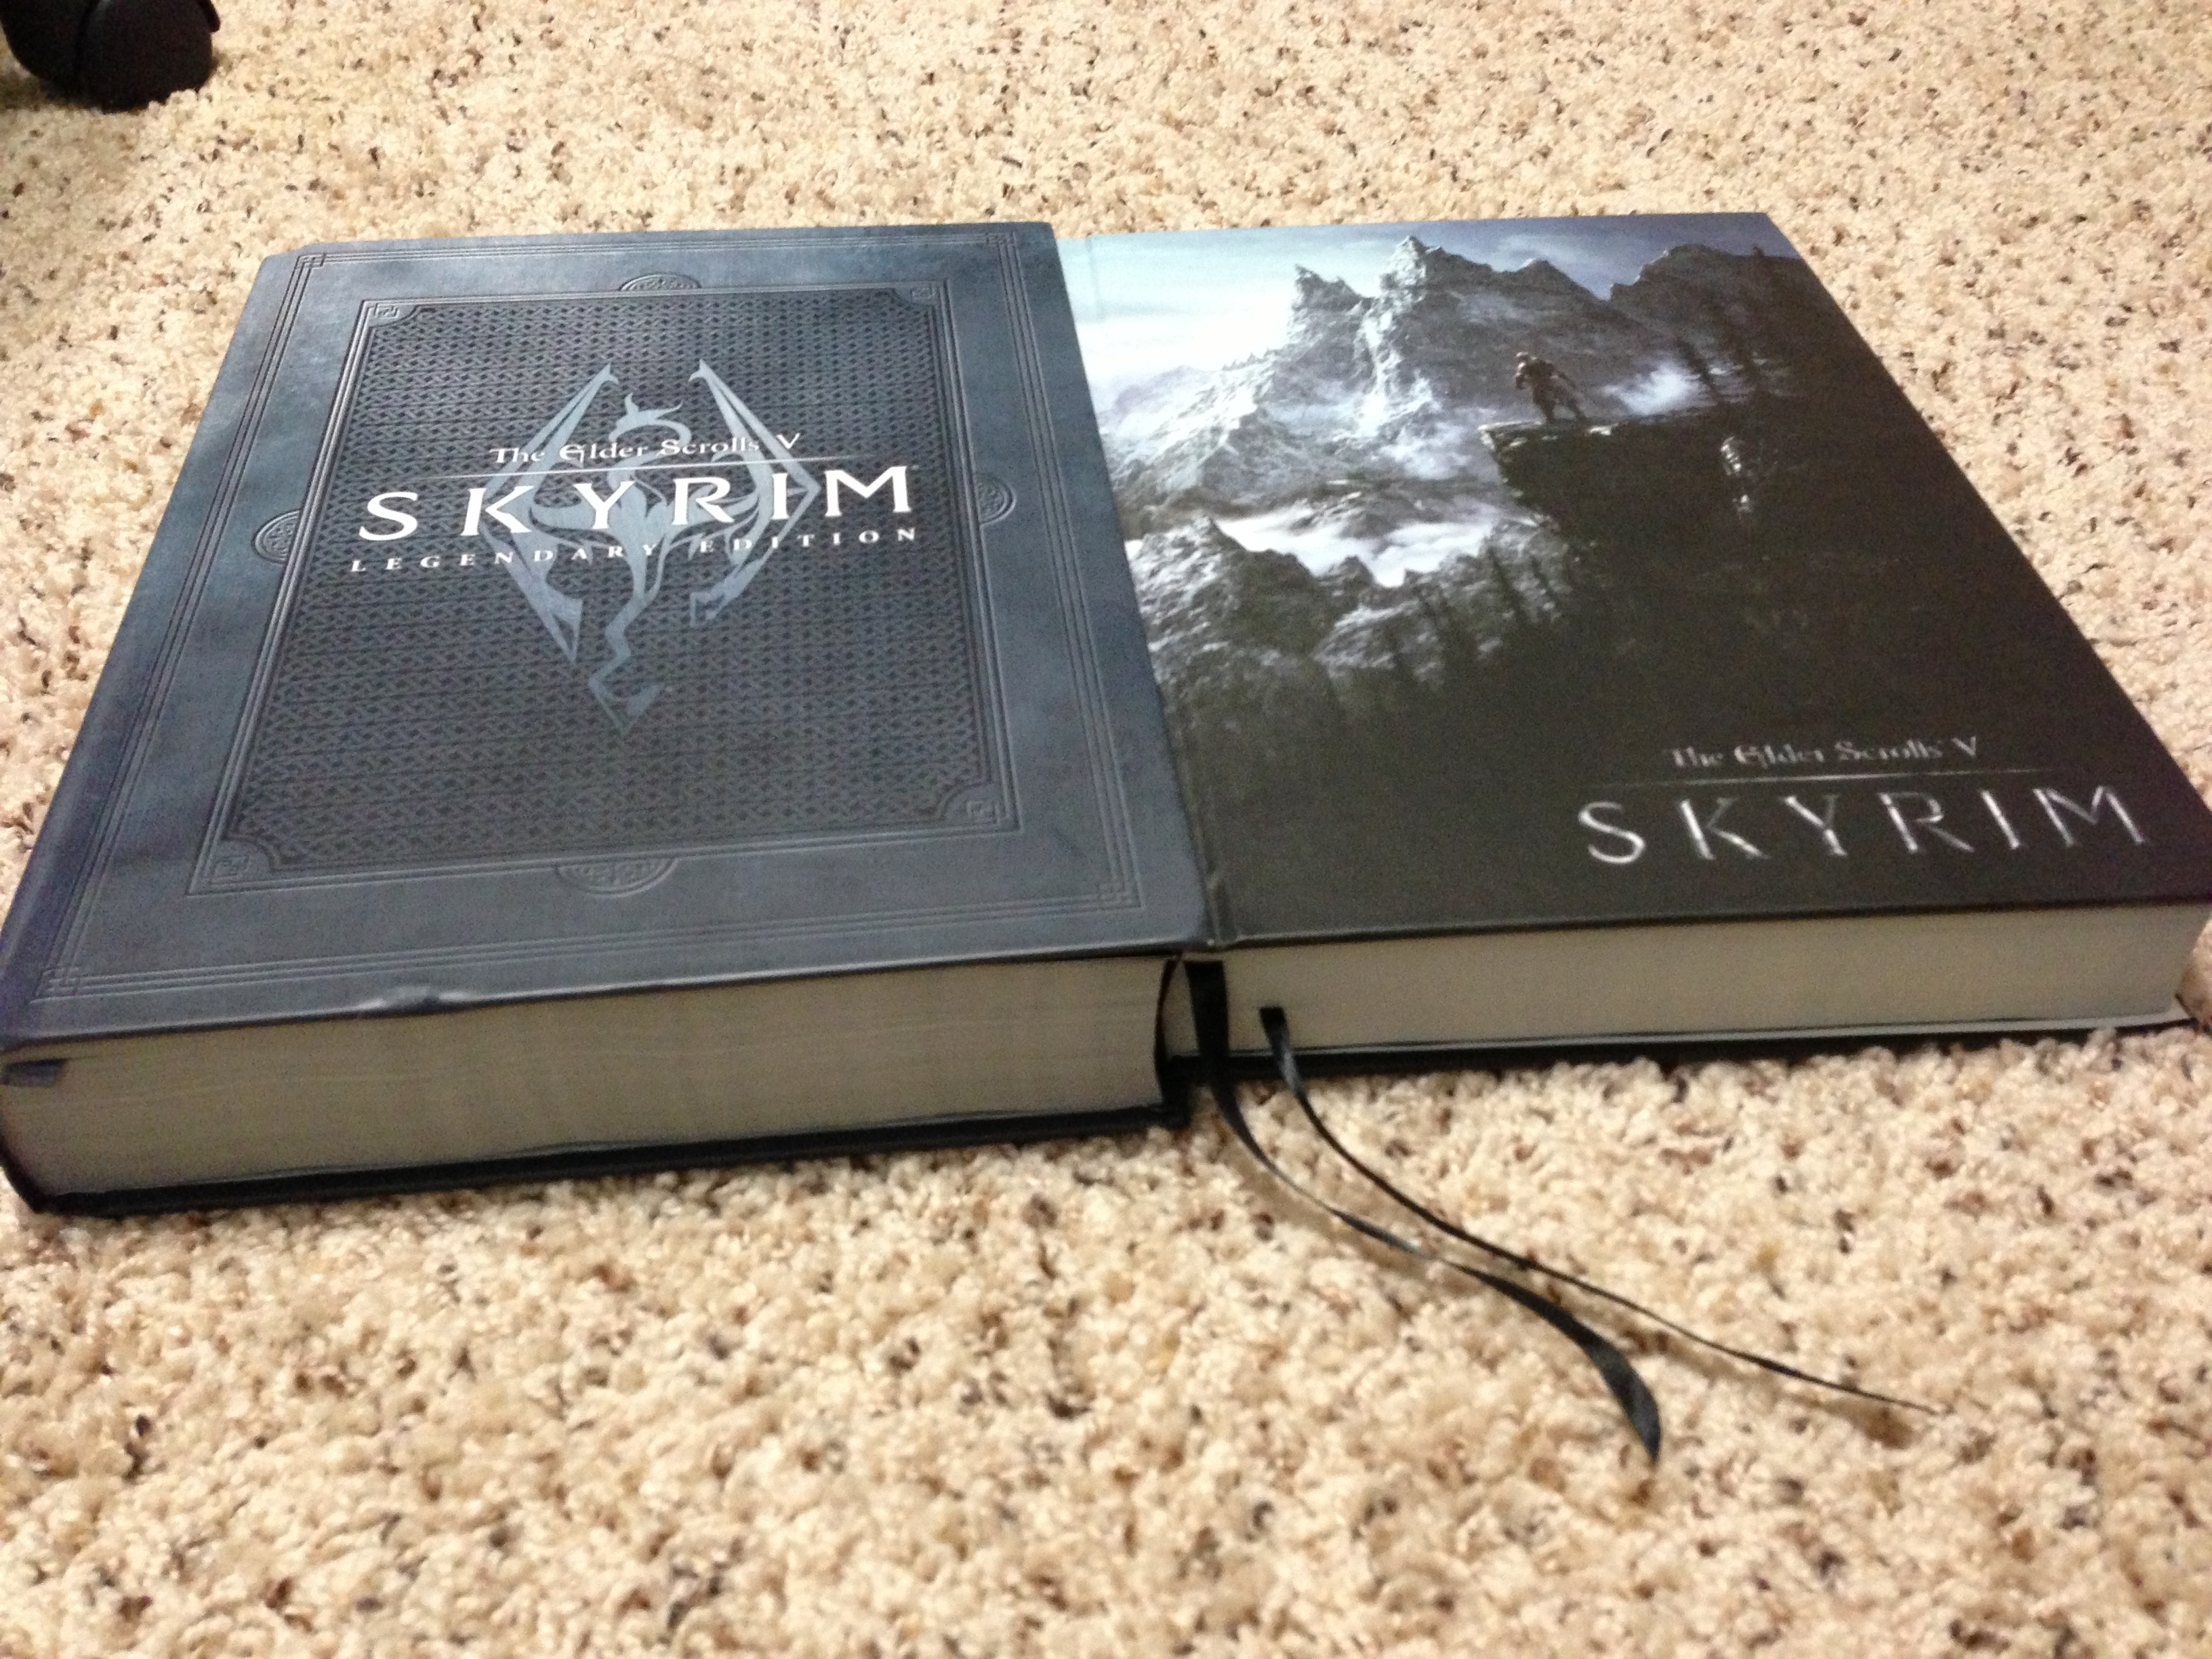 the skyrim strategy guide was the largest strategy guide i own rh strategyguidereviews com prima guide skyrim pdf skyrim prima guide download